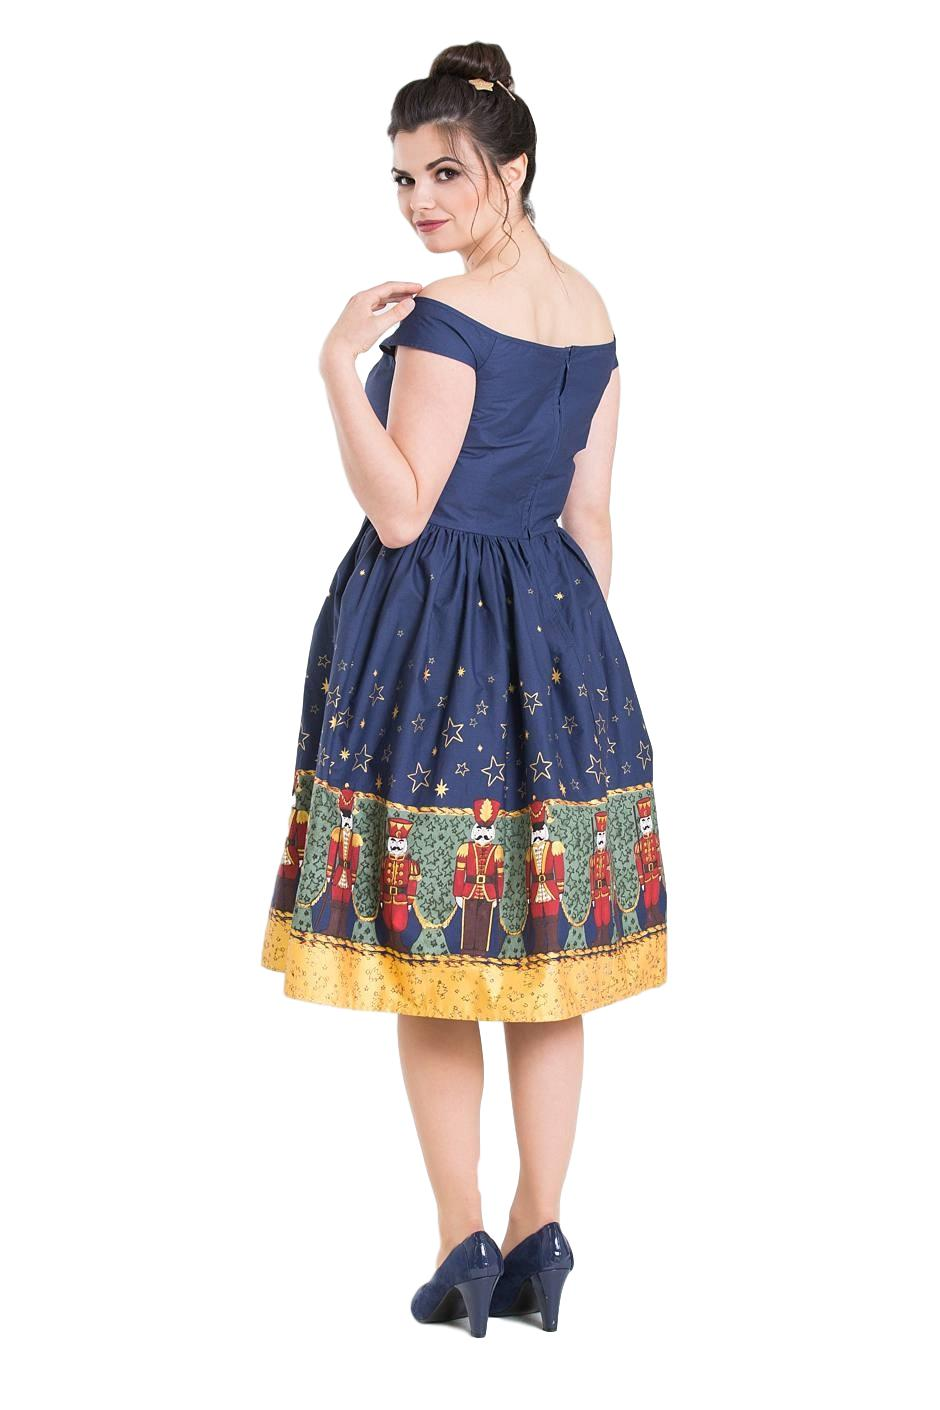 Christmas Party Dress.Details About Hell Bunny Nutcracker Vintage Retro 50s Christmas Party Off Shoulder Flare Dress